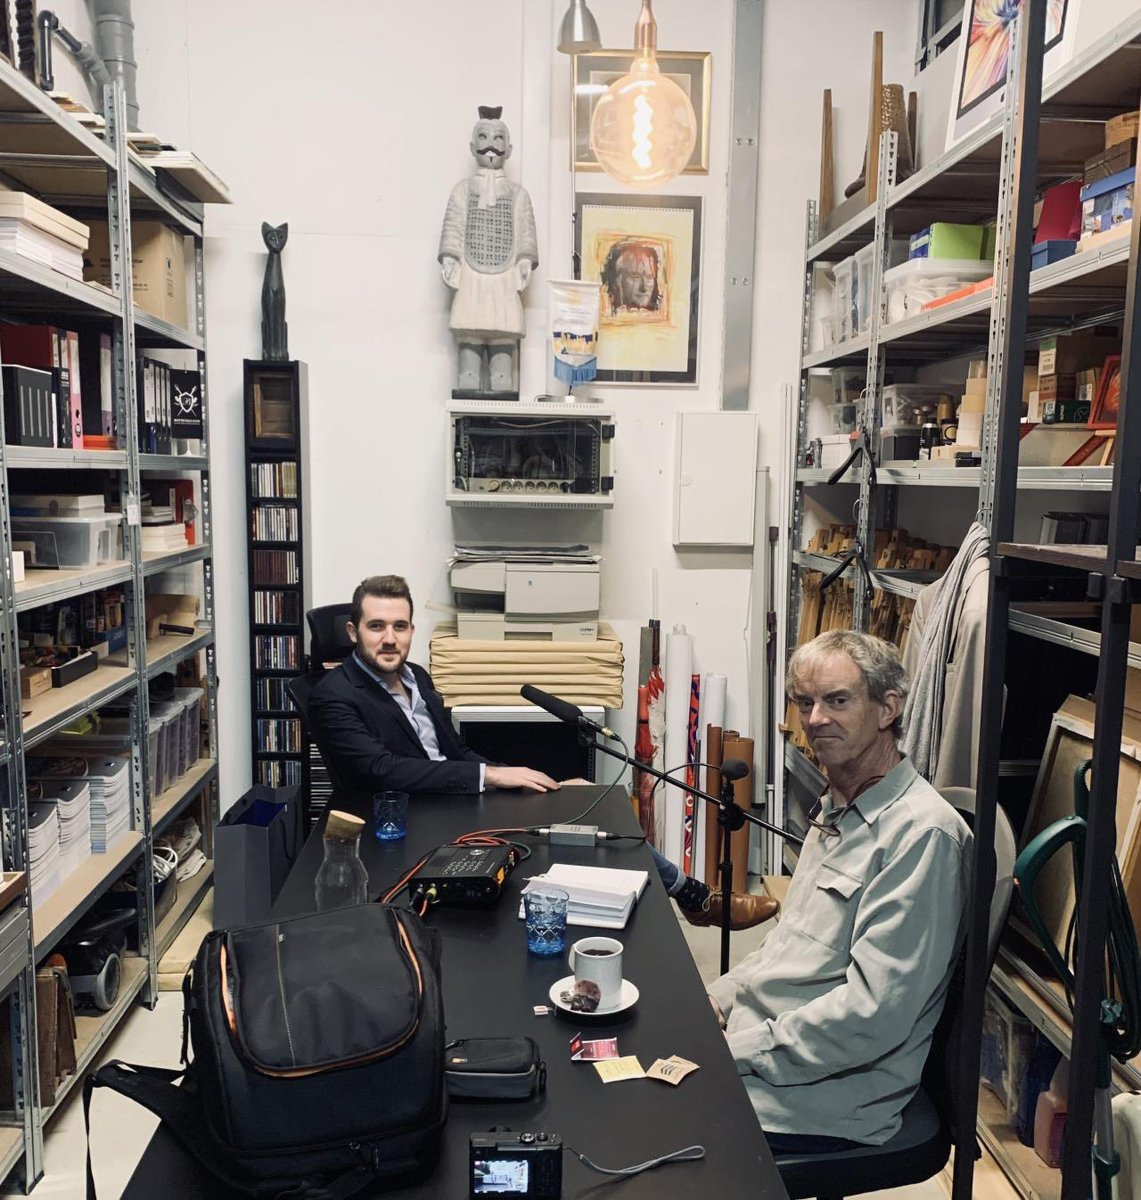 http://www.aamicorporation.com  / Today we were visited by Mr. Chris Wherry from United Kingdom, Programme Moderator at Radio Slovenia International and Sound trainer at ZeLIG. We made an interview about art connecting with business and AAMI Future. #aami #chriswherry #art #btccity pic.twitter.com/HQa4x5jzjF